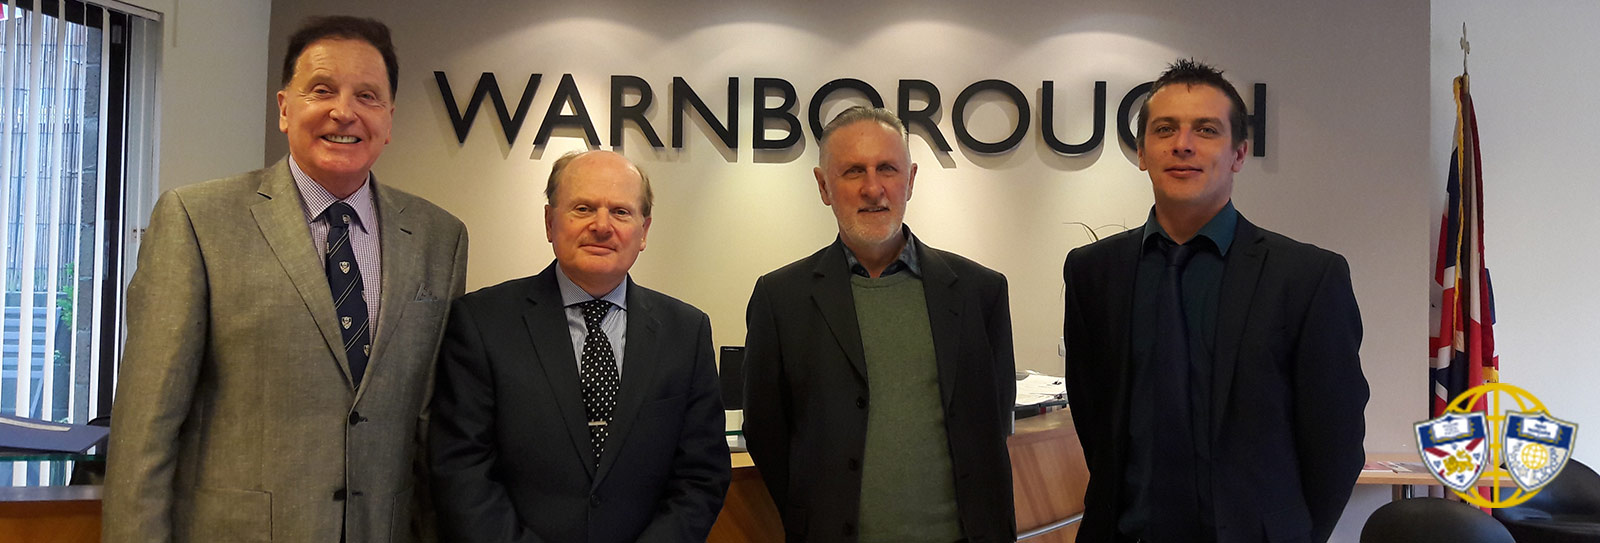 ACS Principal, John Mason, visits Warnborough HQ